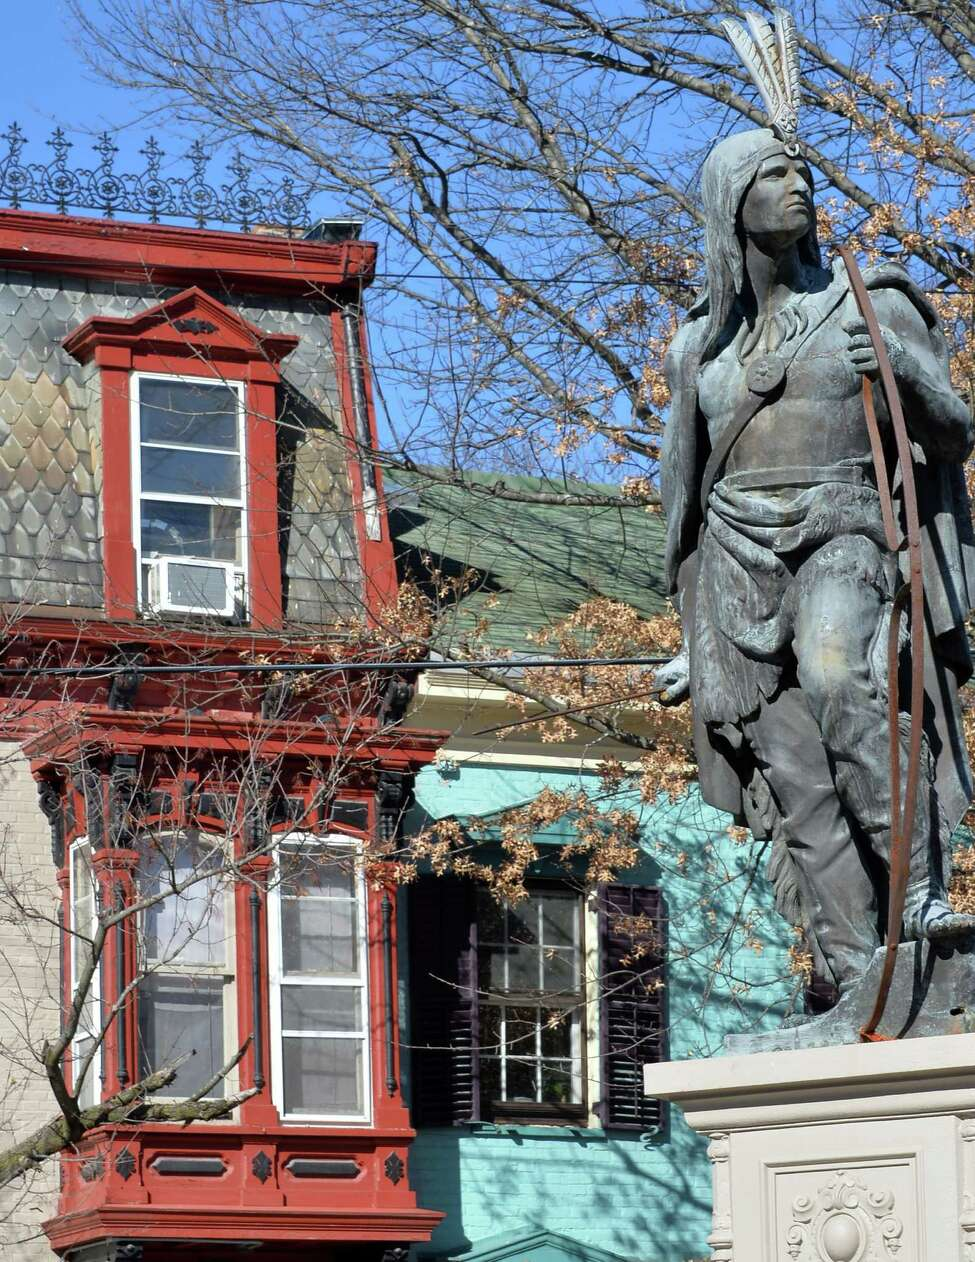 Lawrence the Indian statue and homes along Front Street in the Stockade Thursday Feb. 18, 2016 in Schenectady, NY. (John Carl D'Annibale / Times Union)